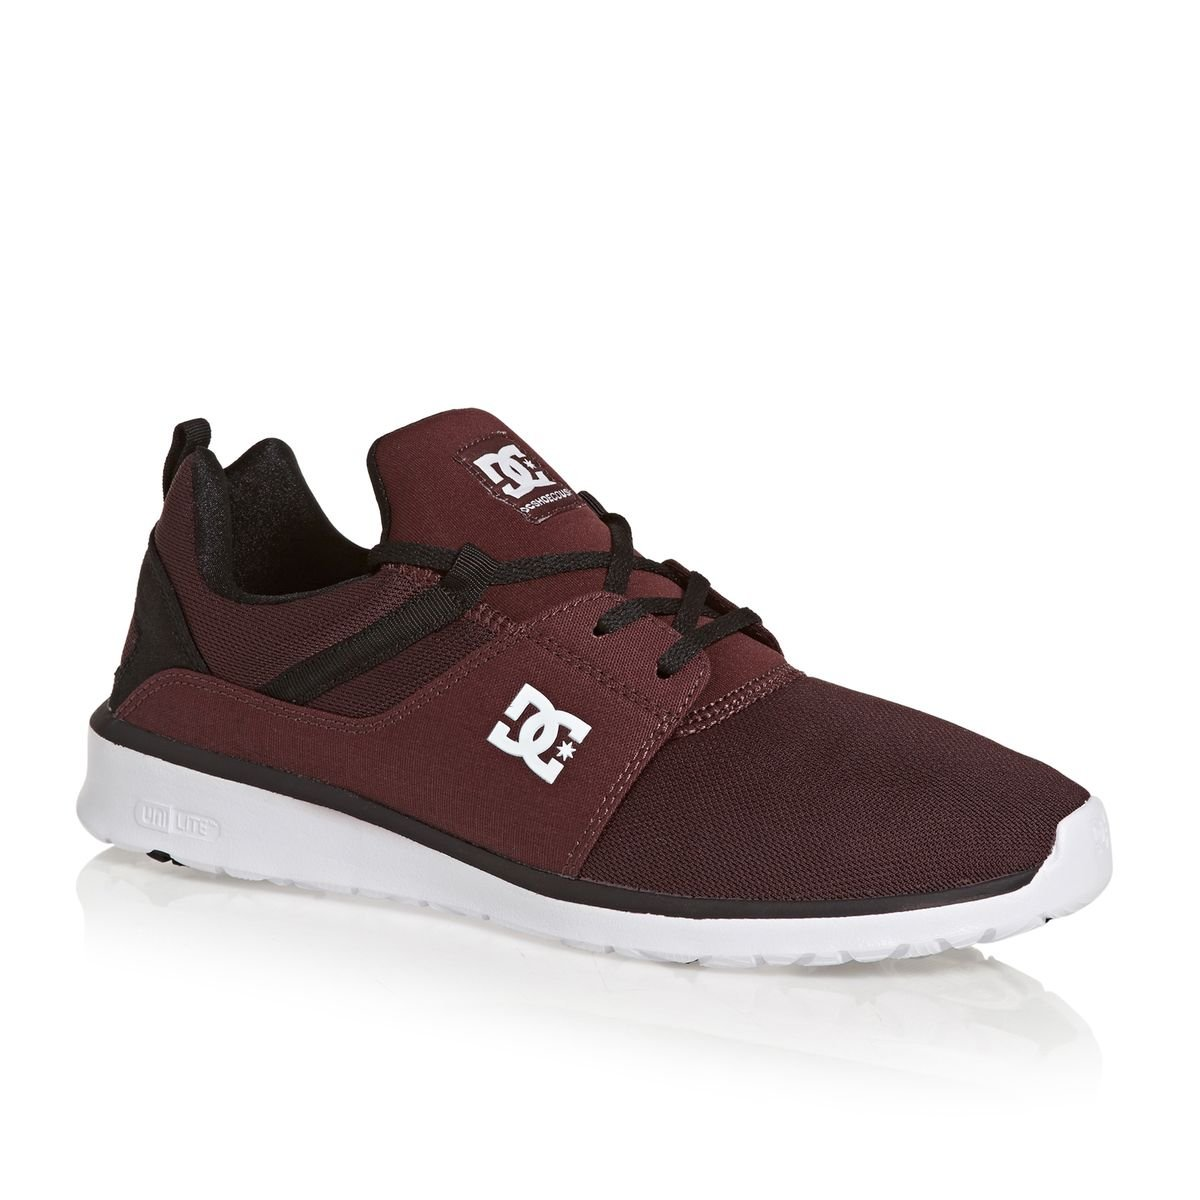 DC Men's Heathrow Casual Skate Shoe B075989Y2Y 12.5D D US|Cabernet